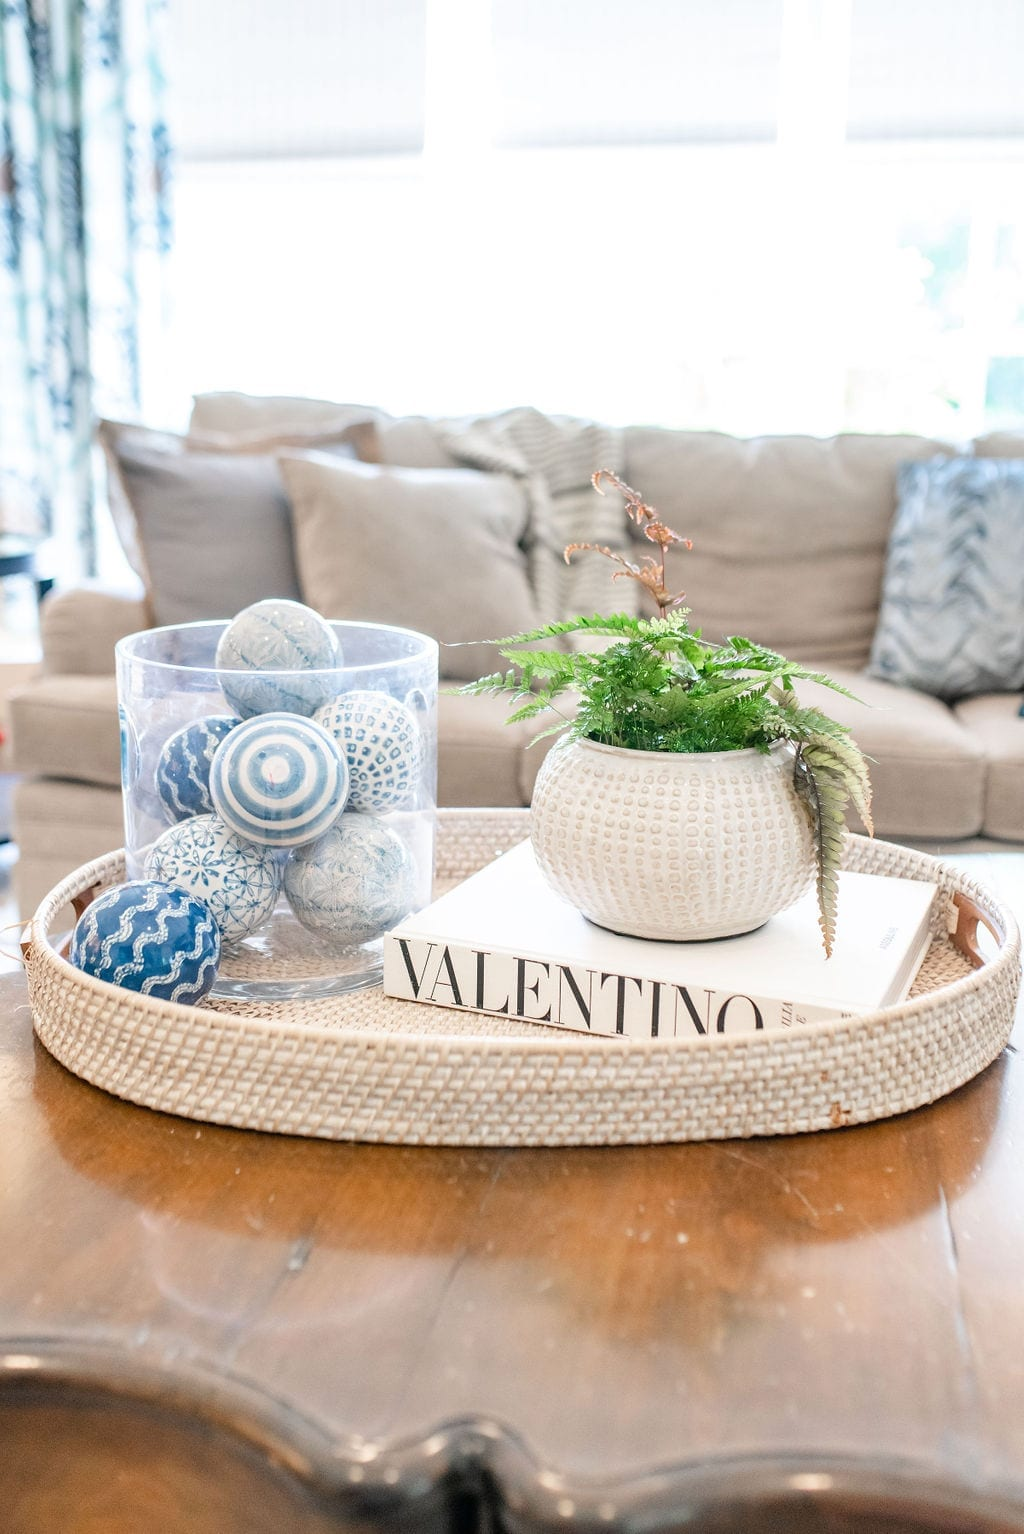 How to decorate your coffee table in neutral and blue colors. Coffee Table Decor Ideas with blue glass balls and blue drapes.